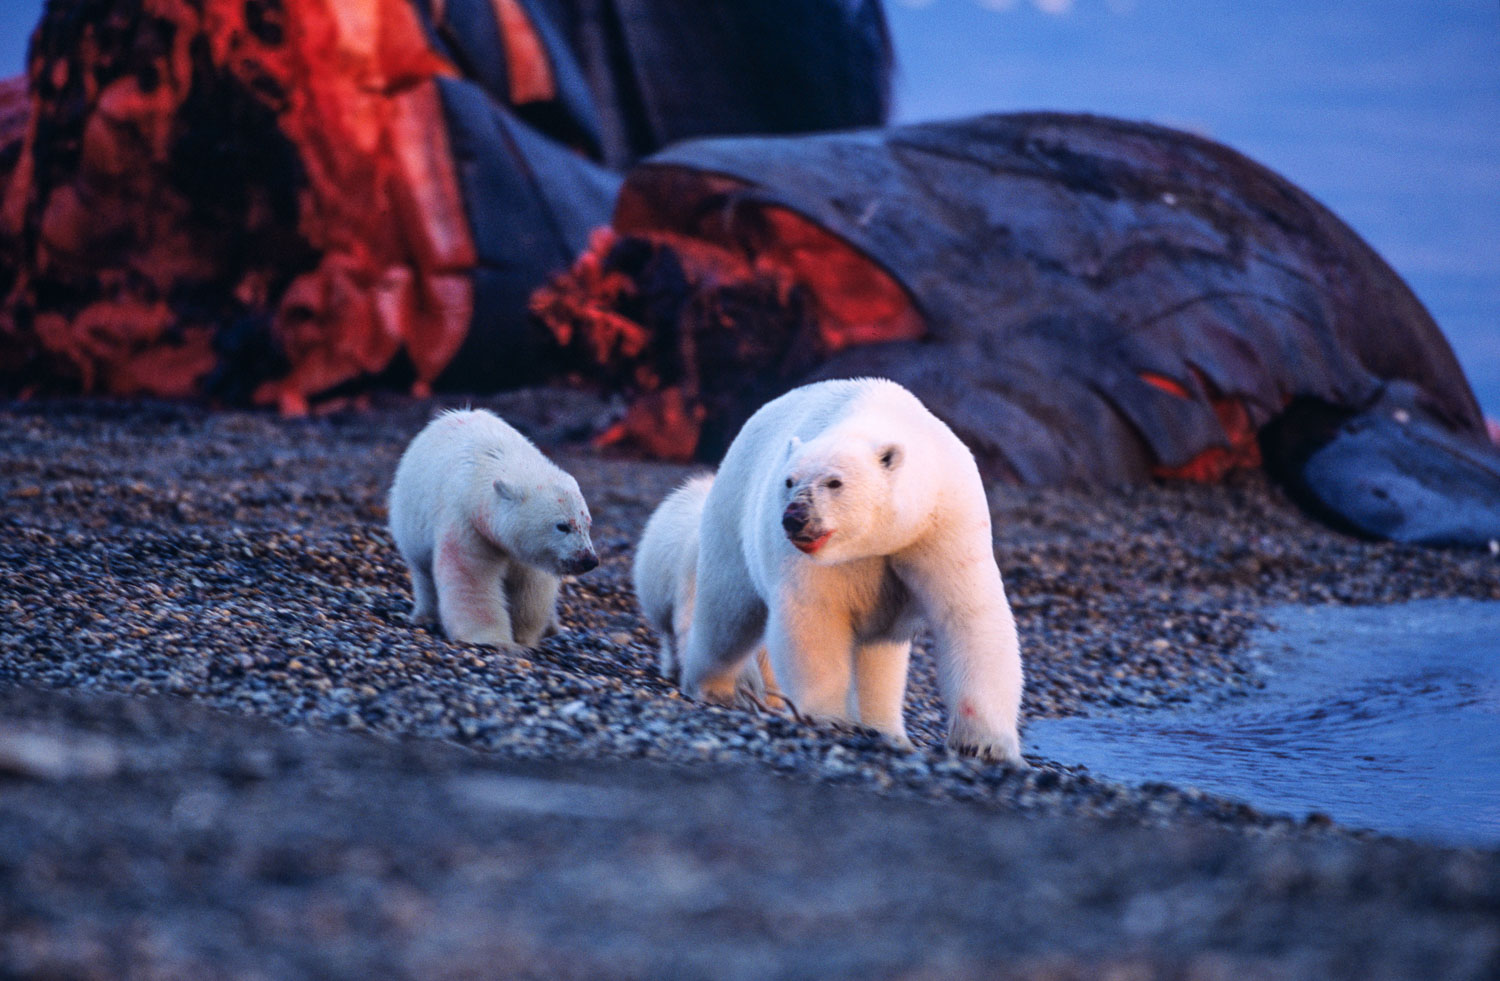 Fulfilled Family of Polar Bears has just fed on Bowhead Whale ,